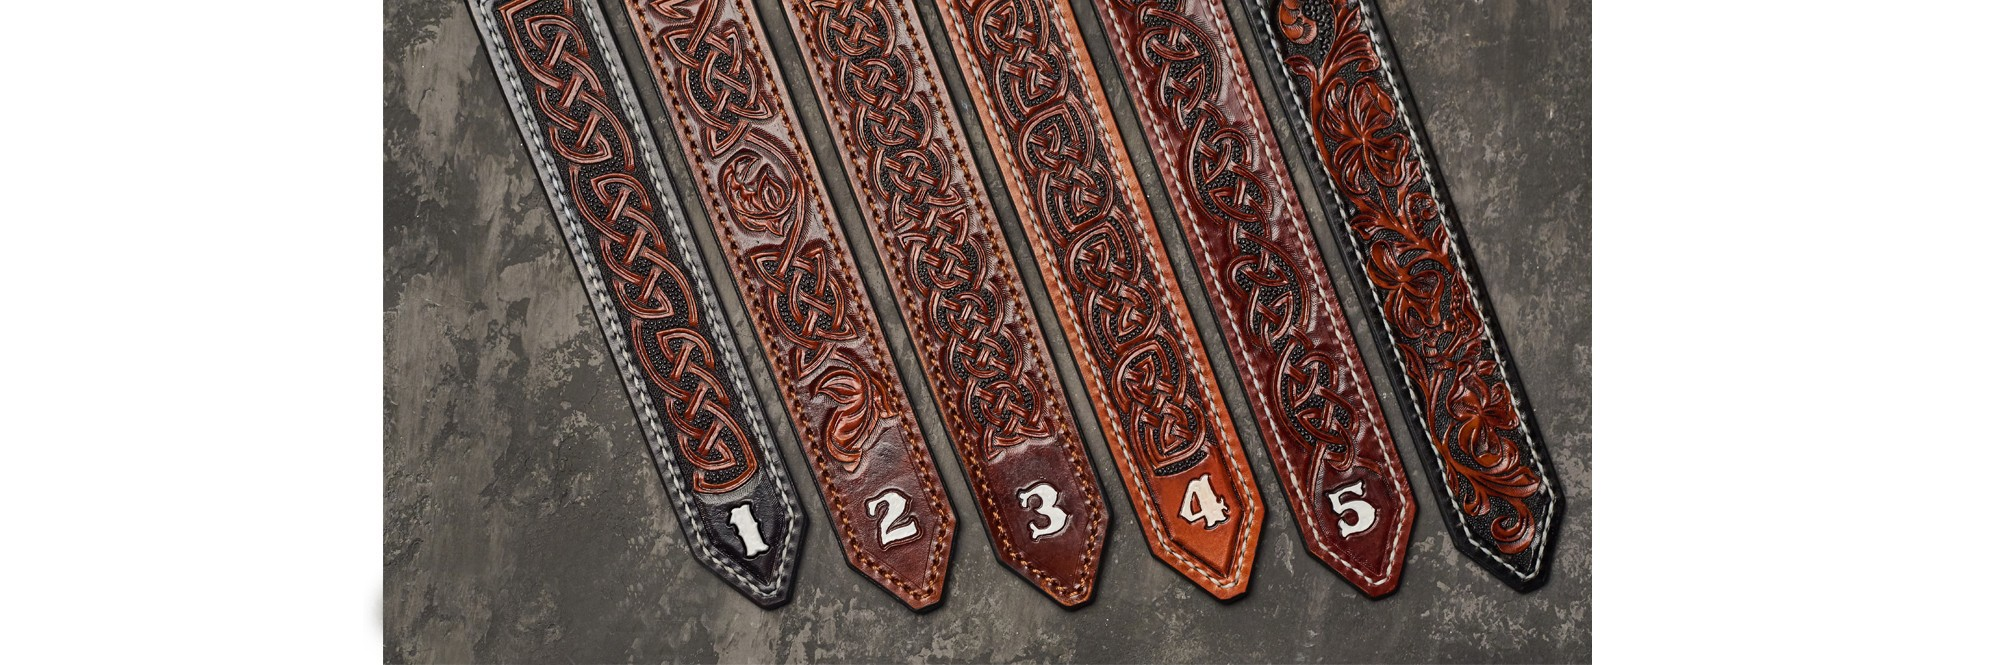 Leather embossed handmade belts